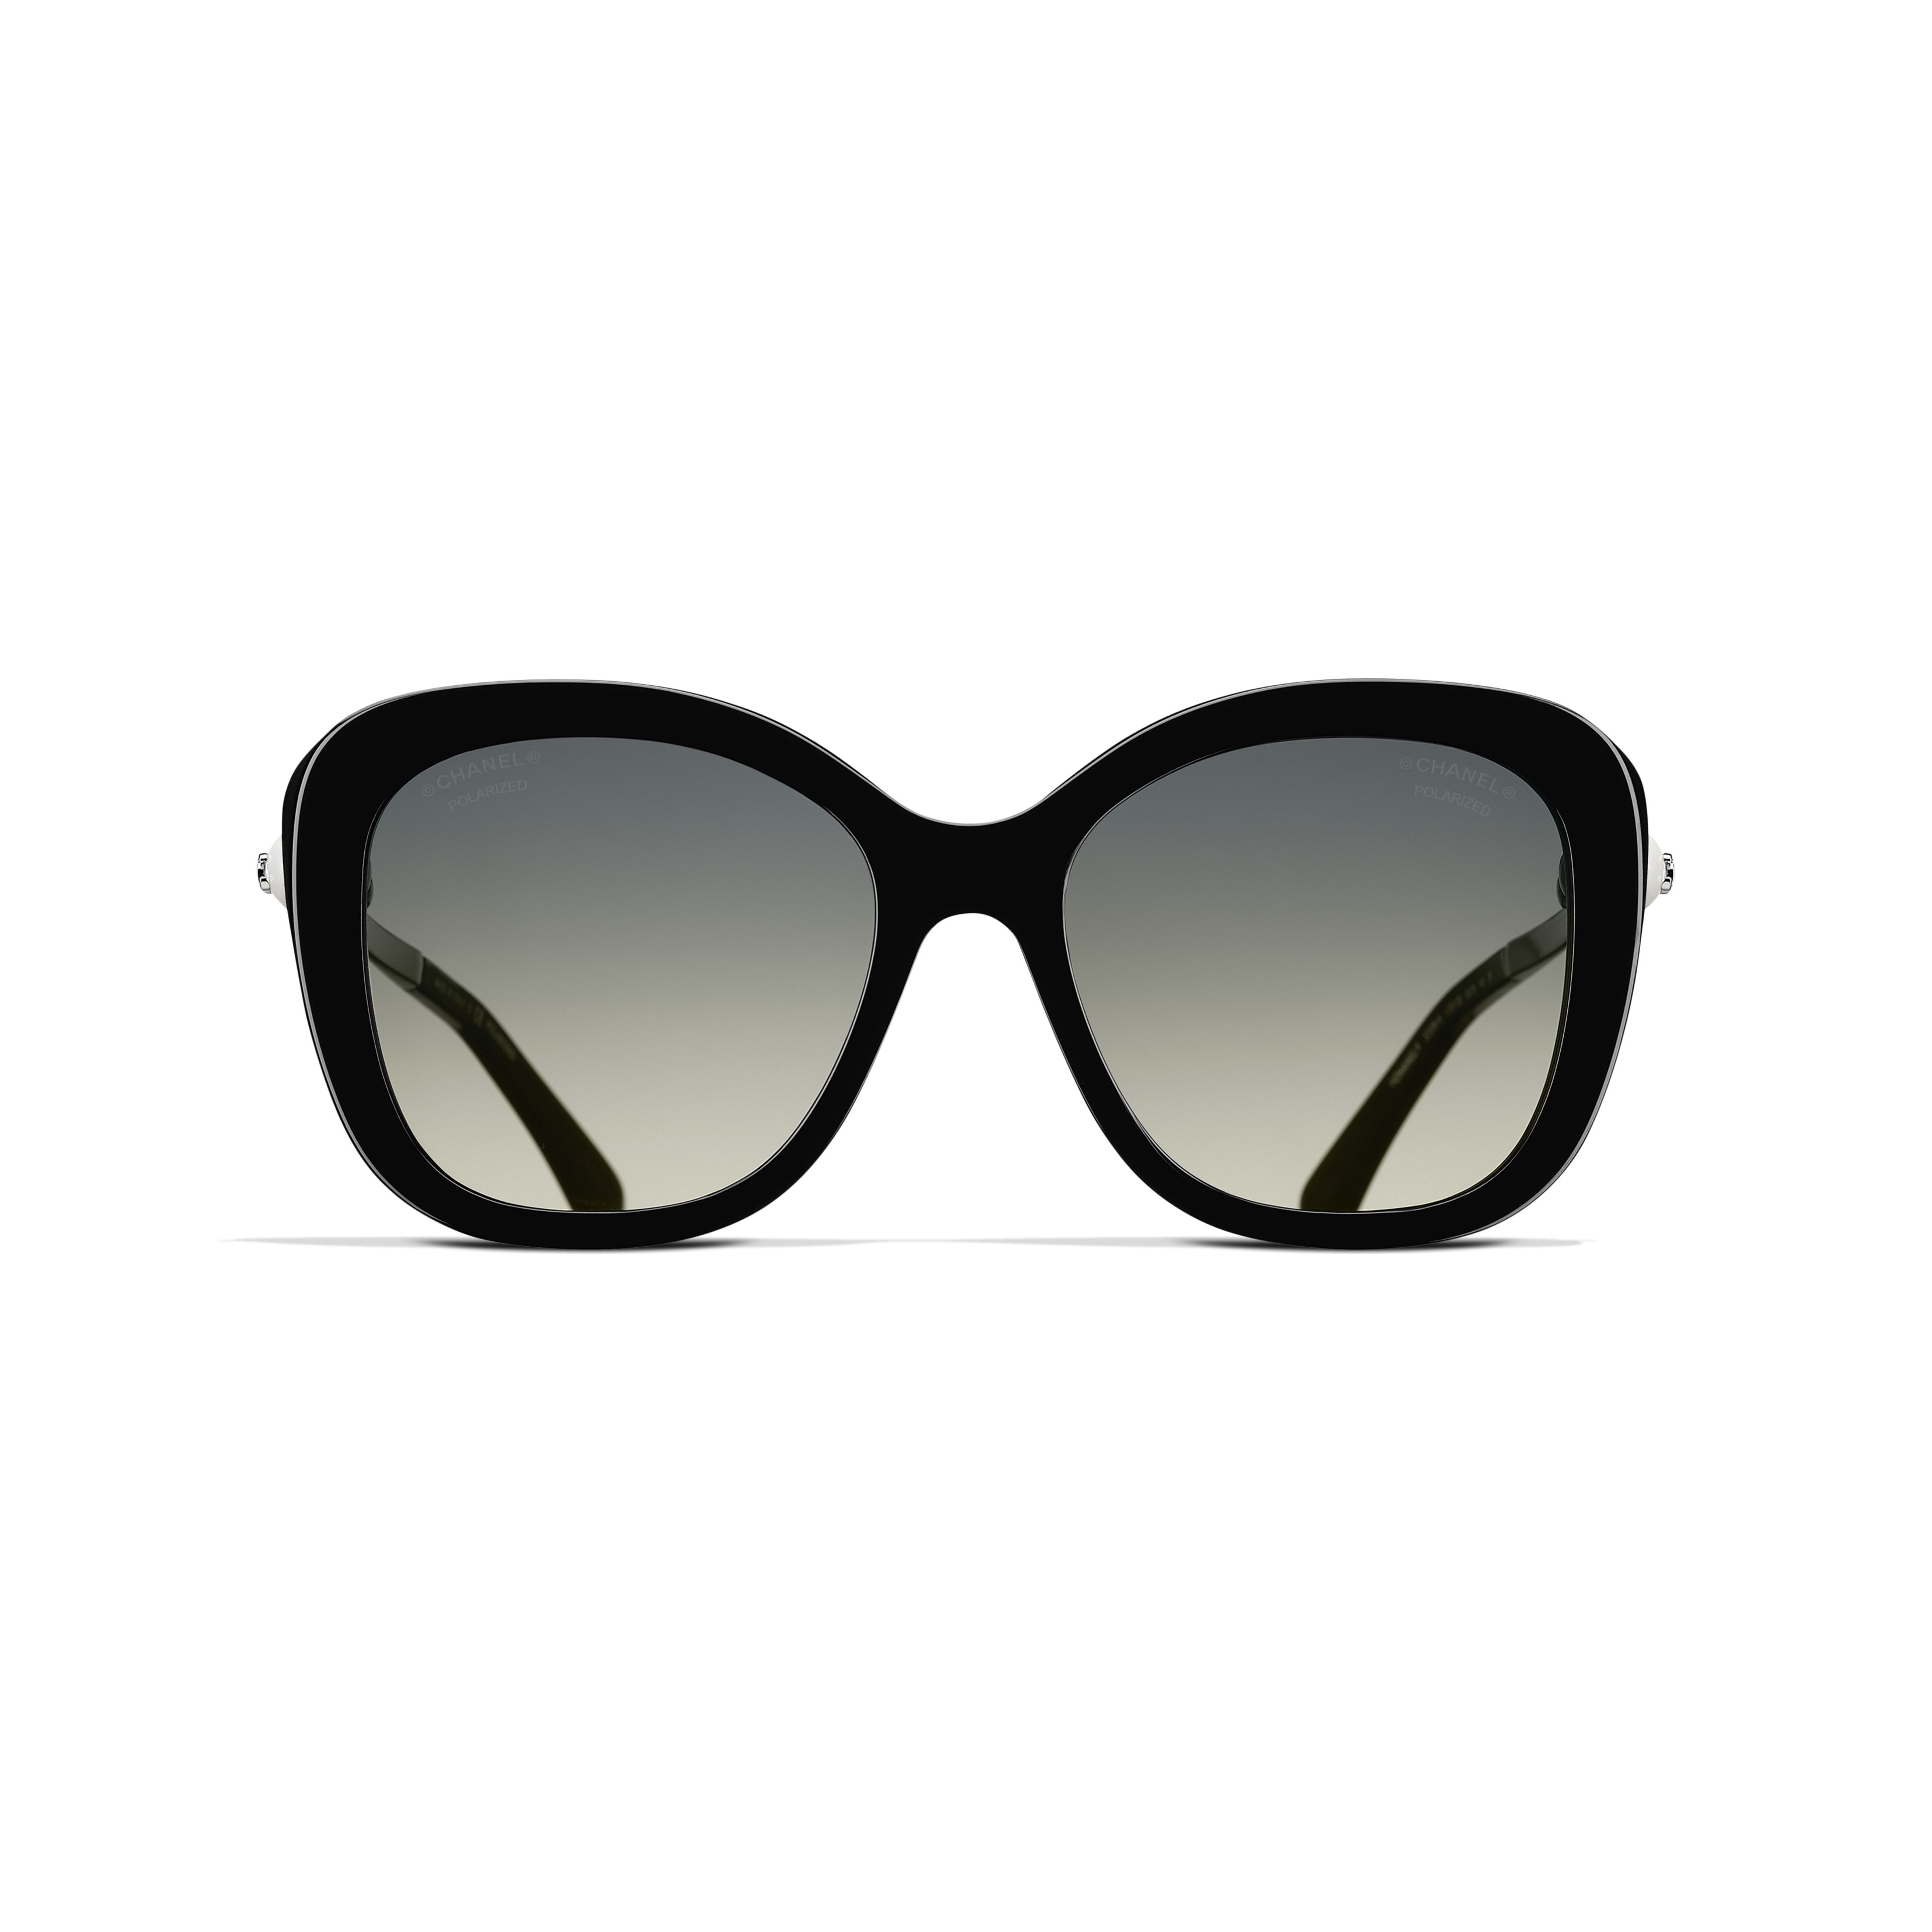 Square Sunglasses - Black - Acetate & Imitation Pearls - CHANEL - Alternative view - see standard sized version